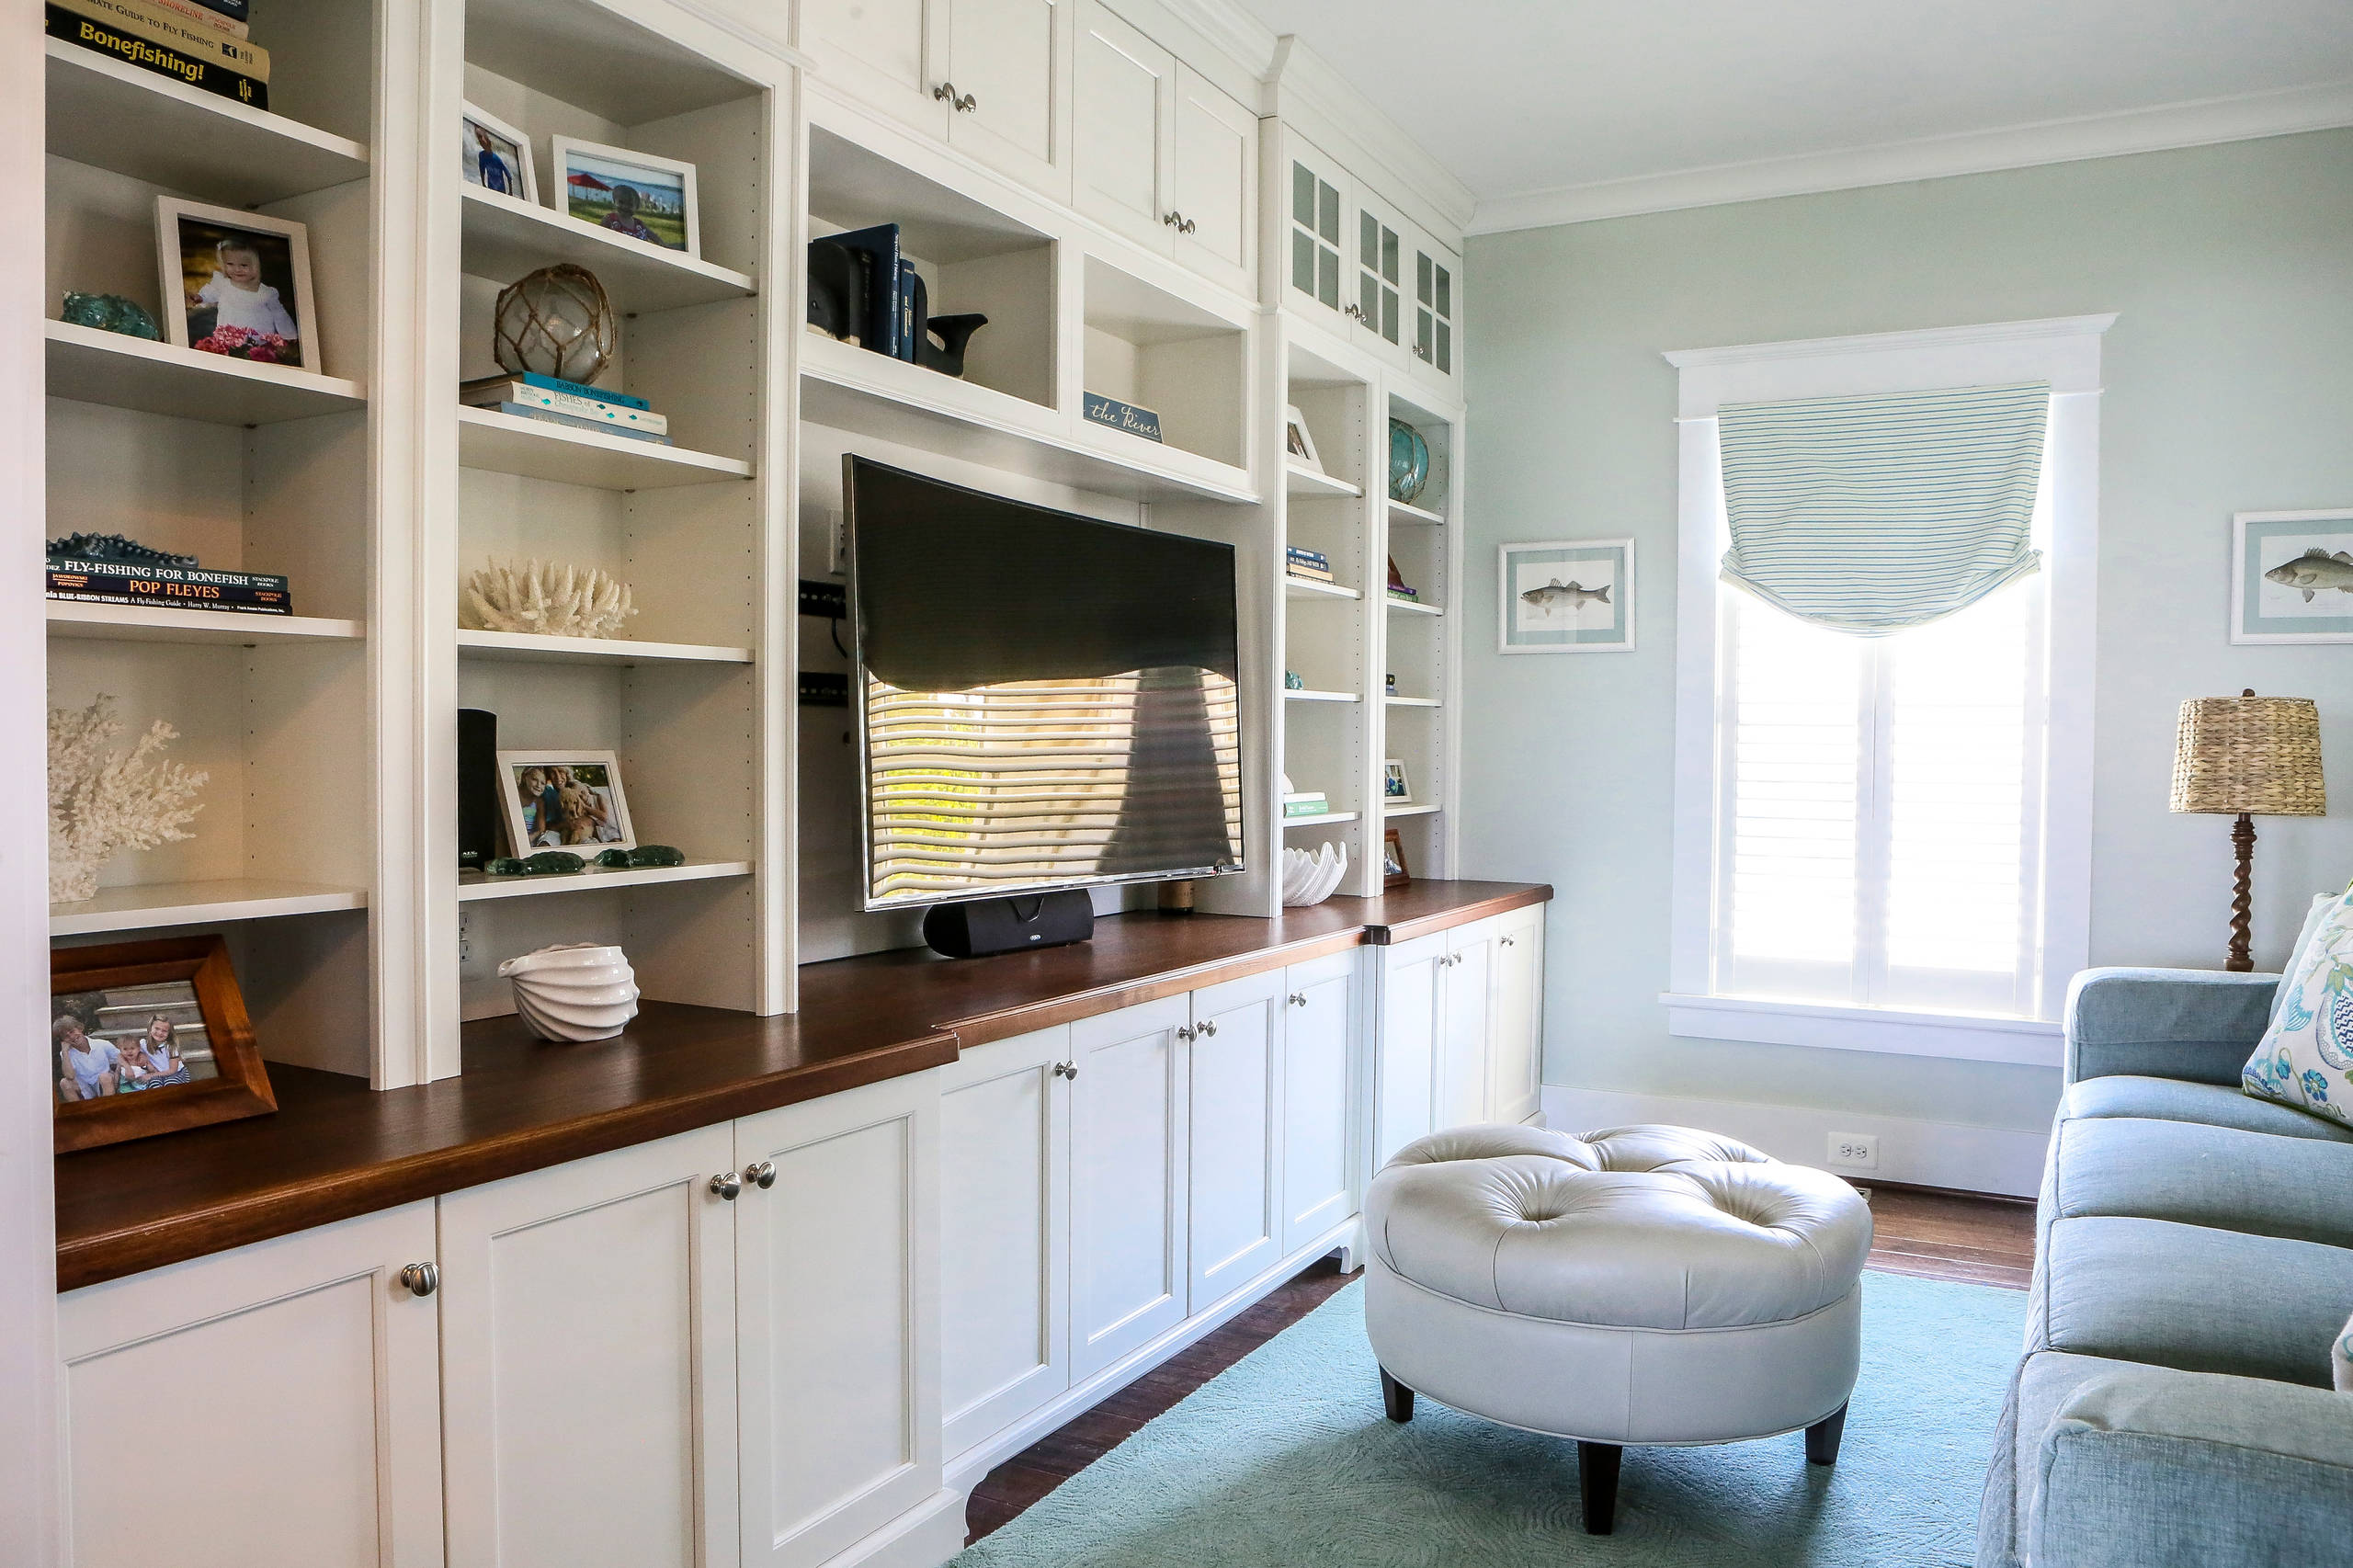 Entertainment Room With Custom Built-in Shelving and Cabinetry